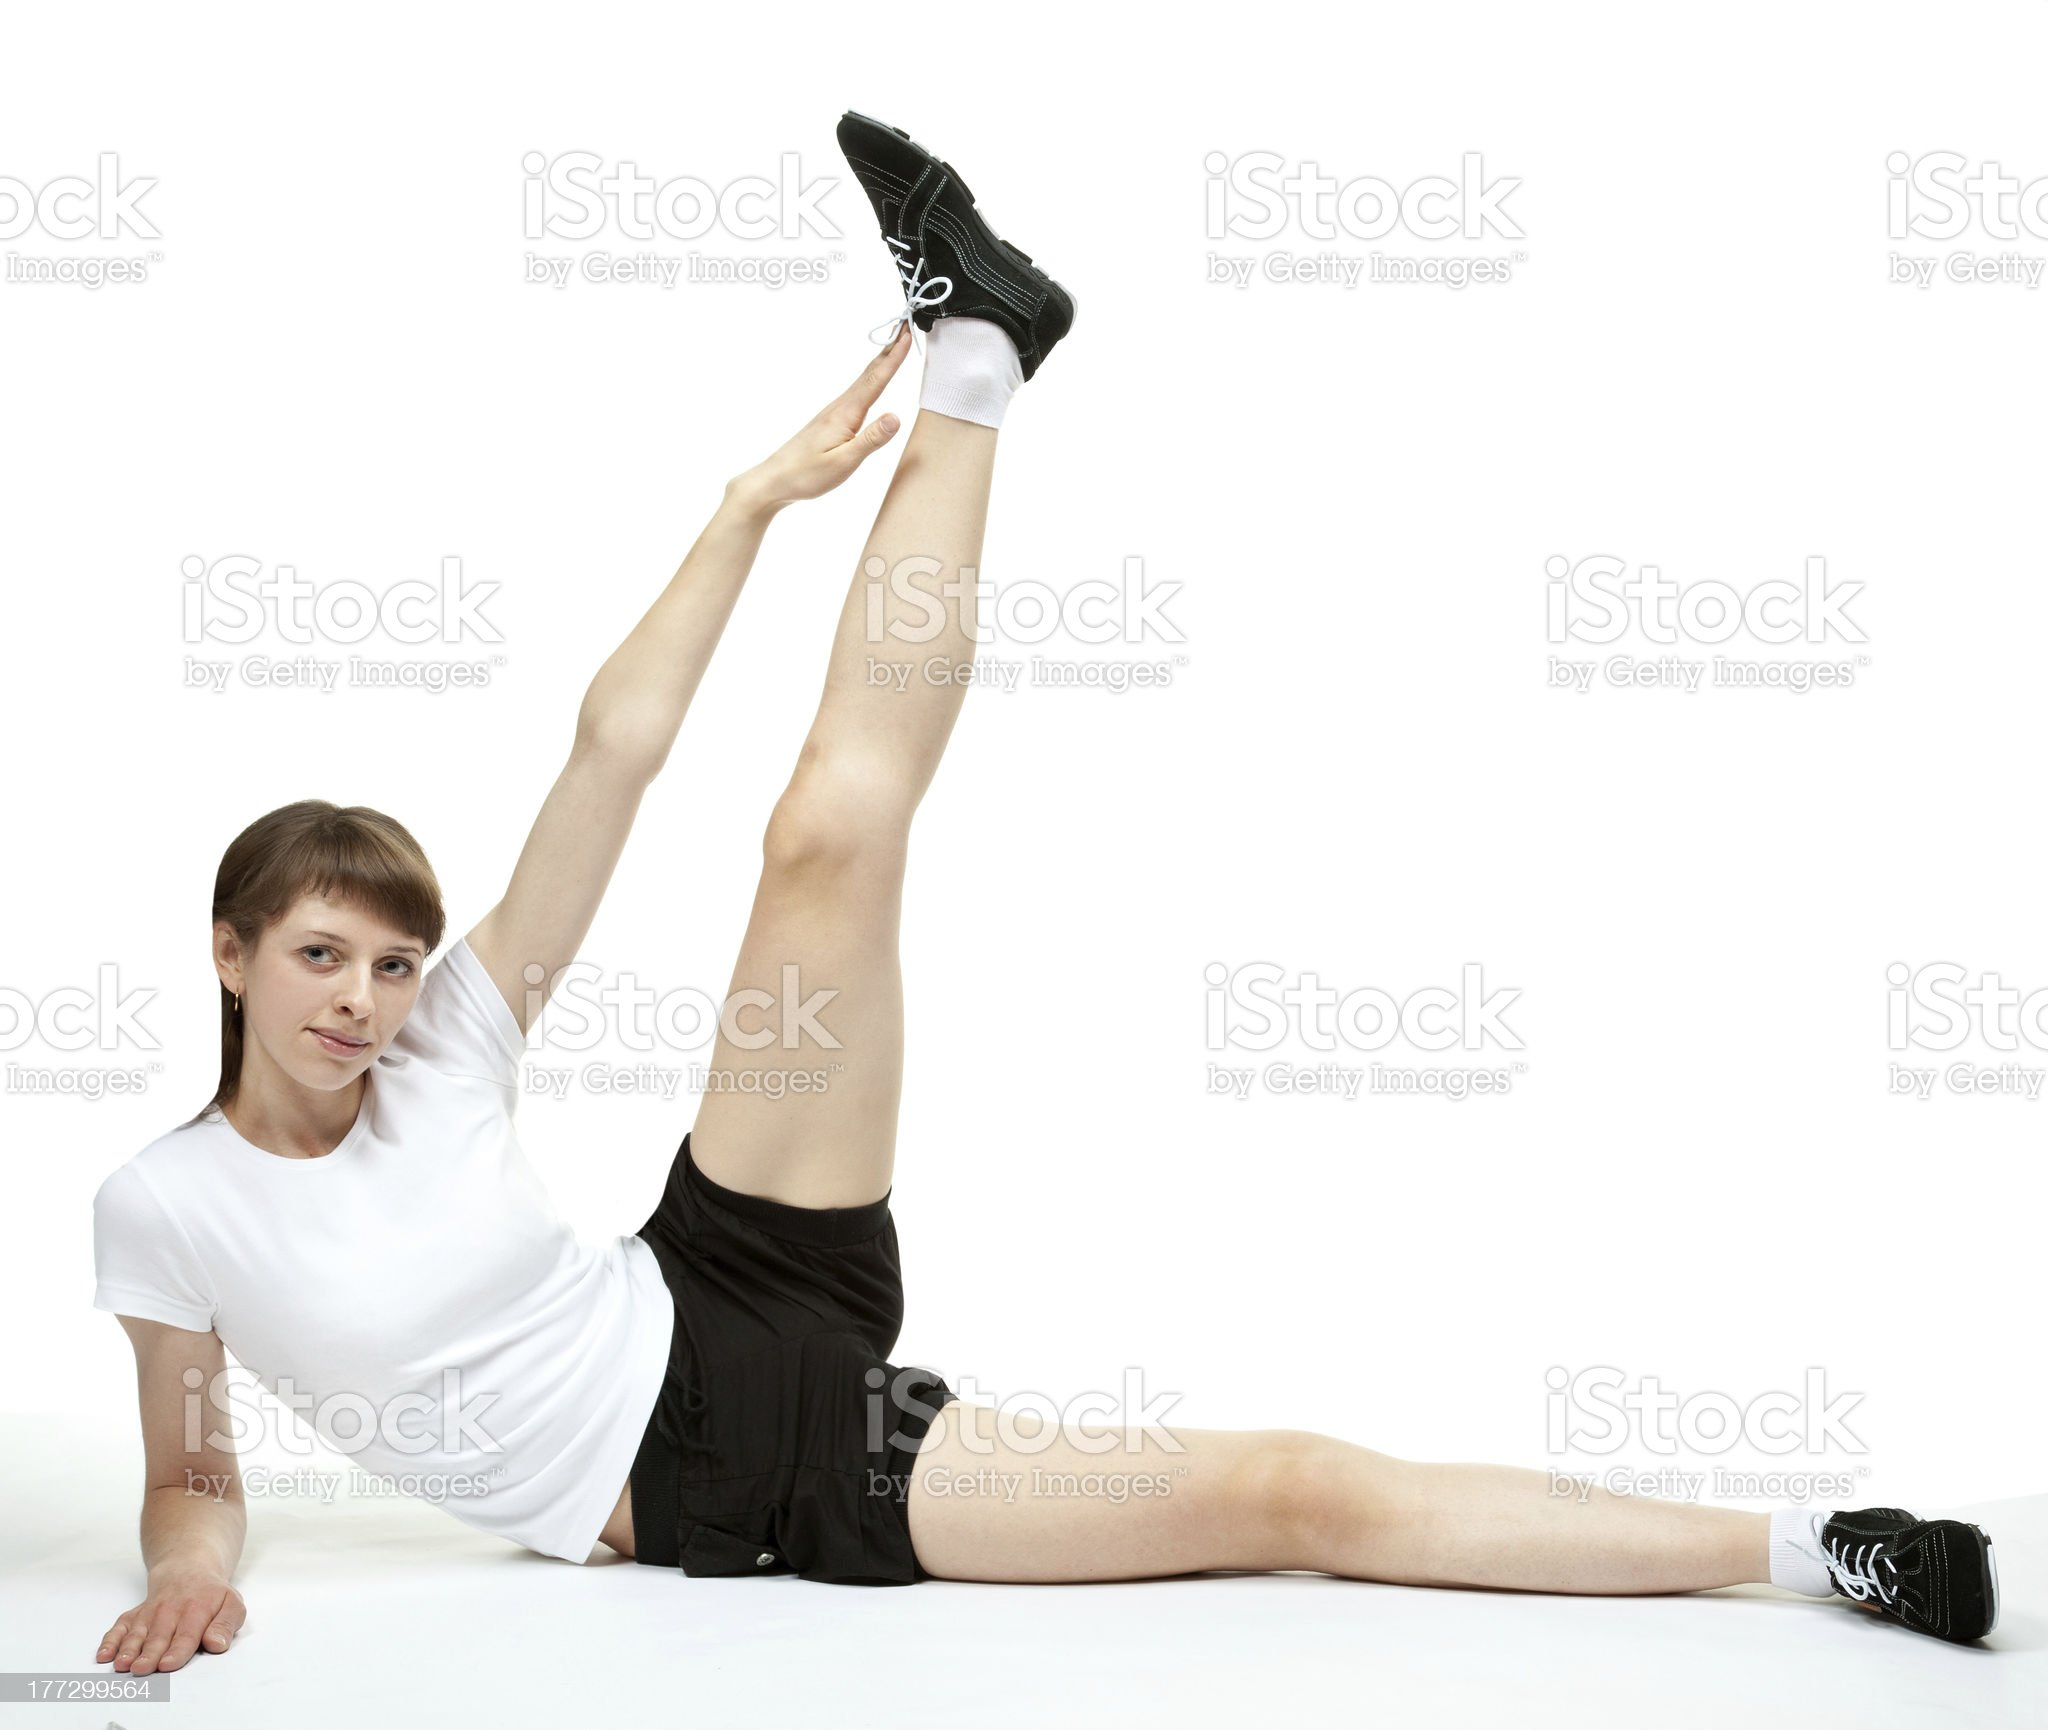 Smiling young woman doing sport exercises royalty-free stock photo